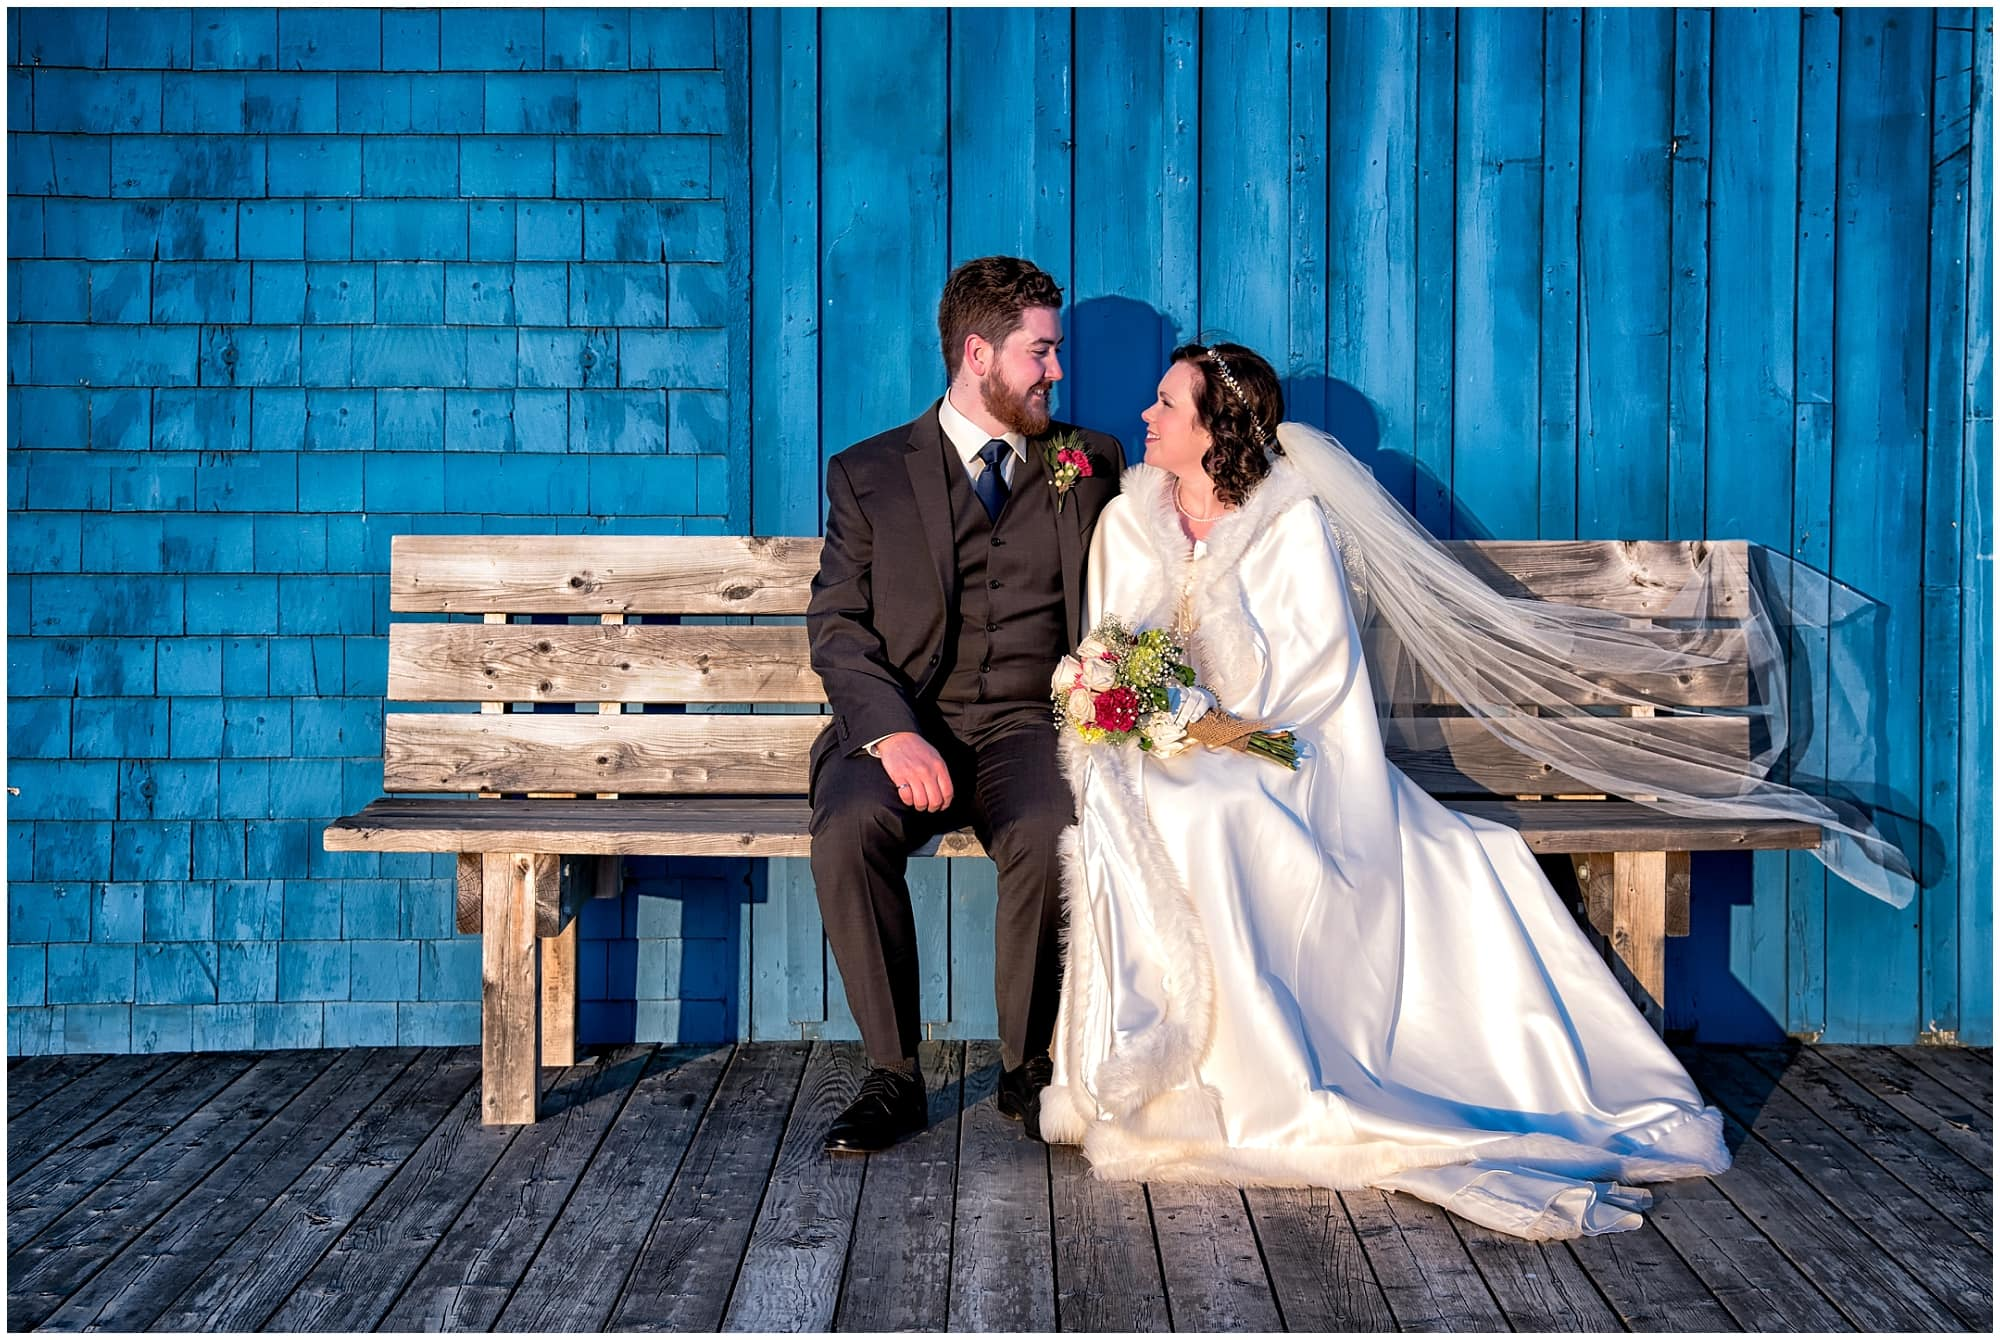 The bride and groom pose on a wooden bench for wedding photos at Fisherman's Cove in Eastern Passage, NS.